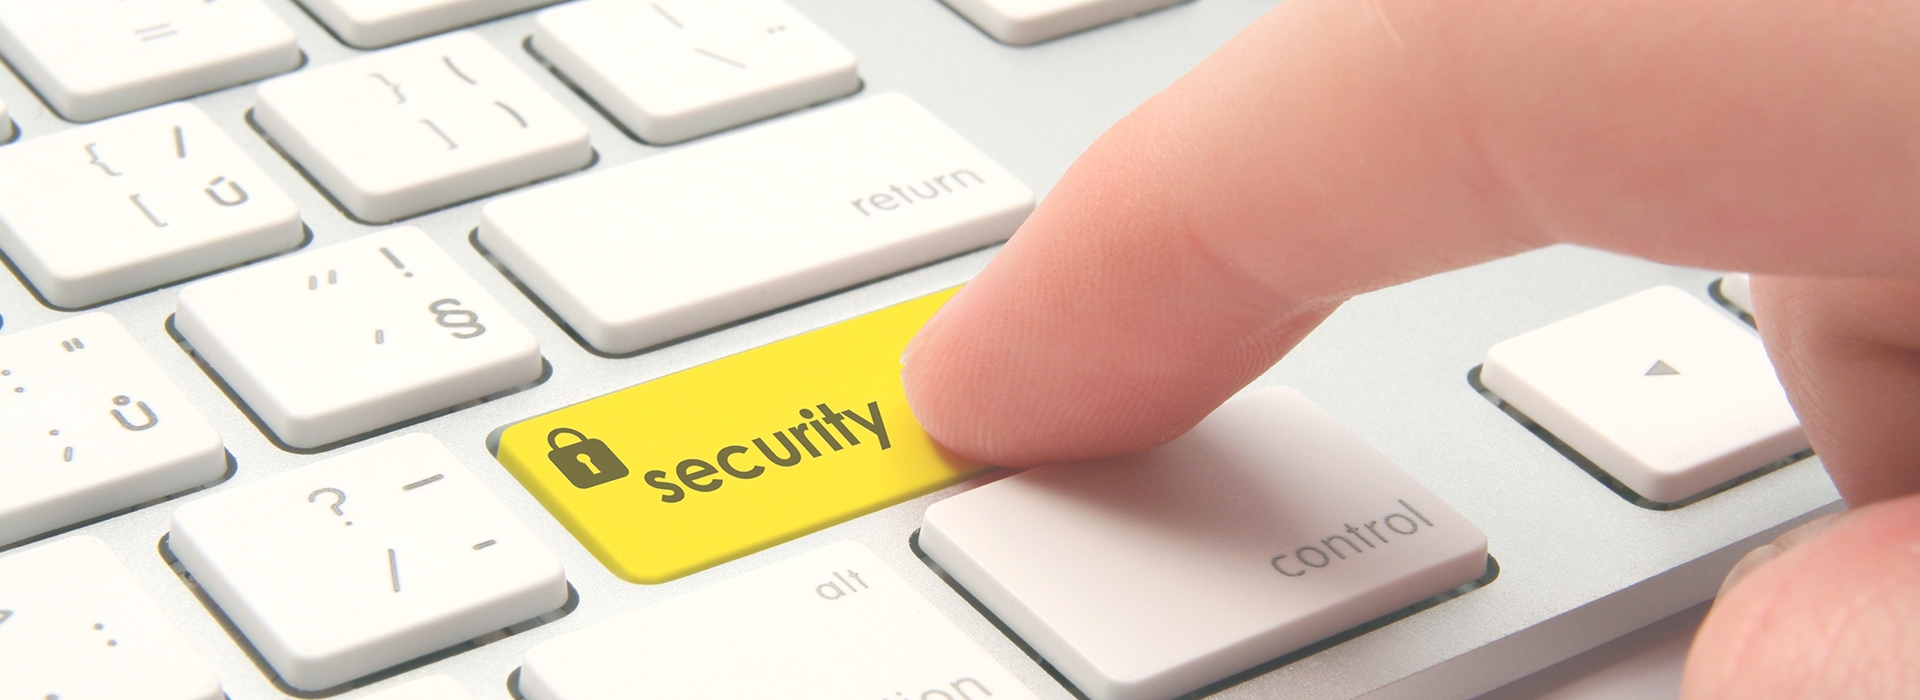 WE PROVIDE COMPLETE INFORMATION SECURITY SERVICES TO OUR CLIENTS